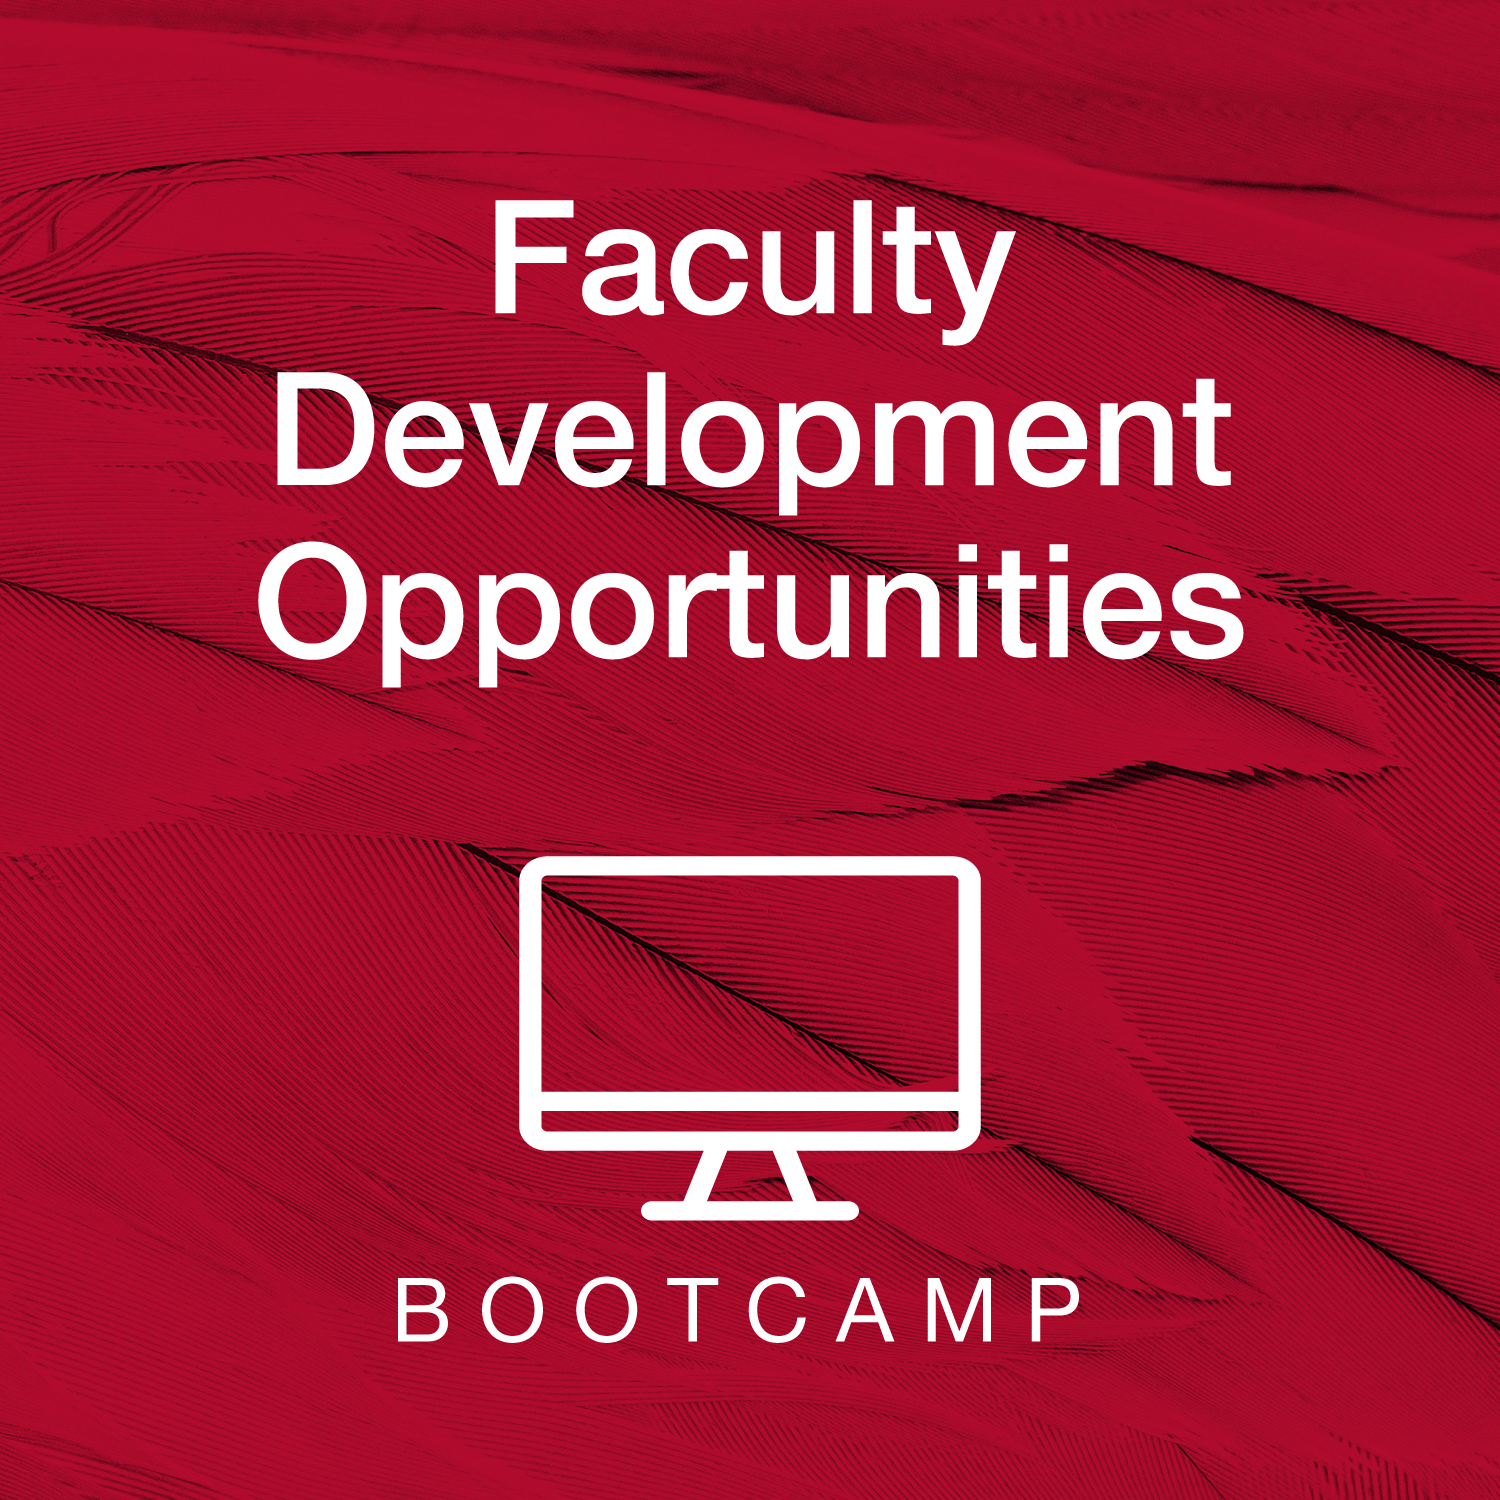 "Image is says ""Faculty Development Opportunities: Bootcamp"""